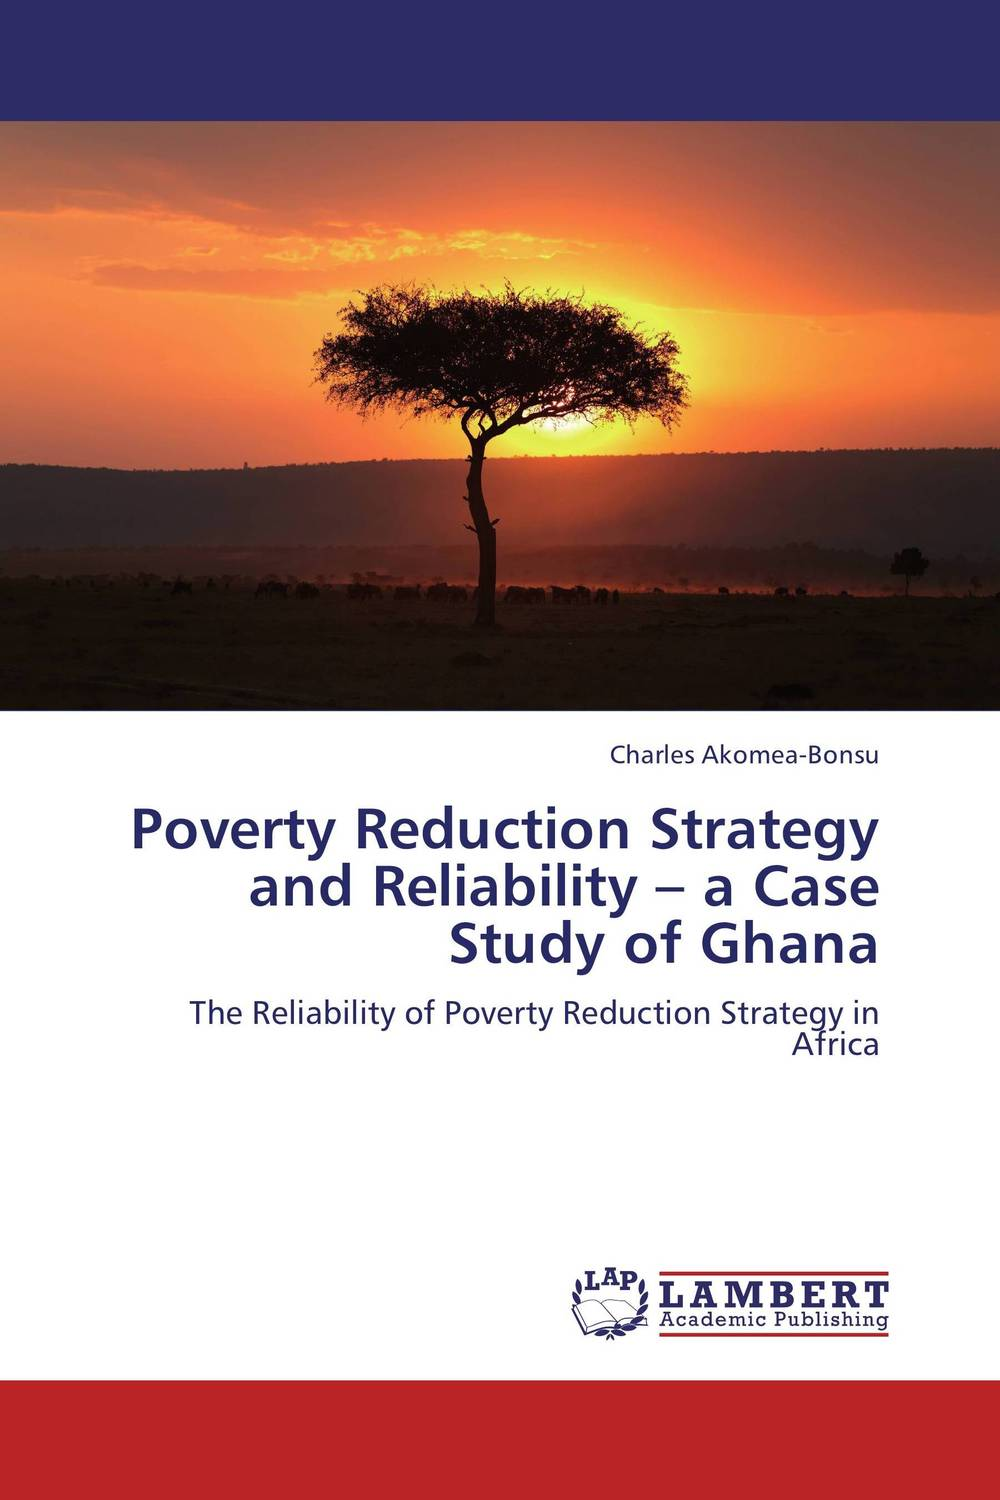 Poverty Reduction Strategy and Reliability – a Case Study of Ghana i manev social capital and strategy effectiveness an empirical study of entrepreneurial ventures in a transition economy